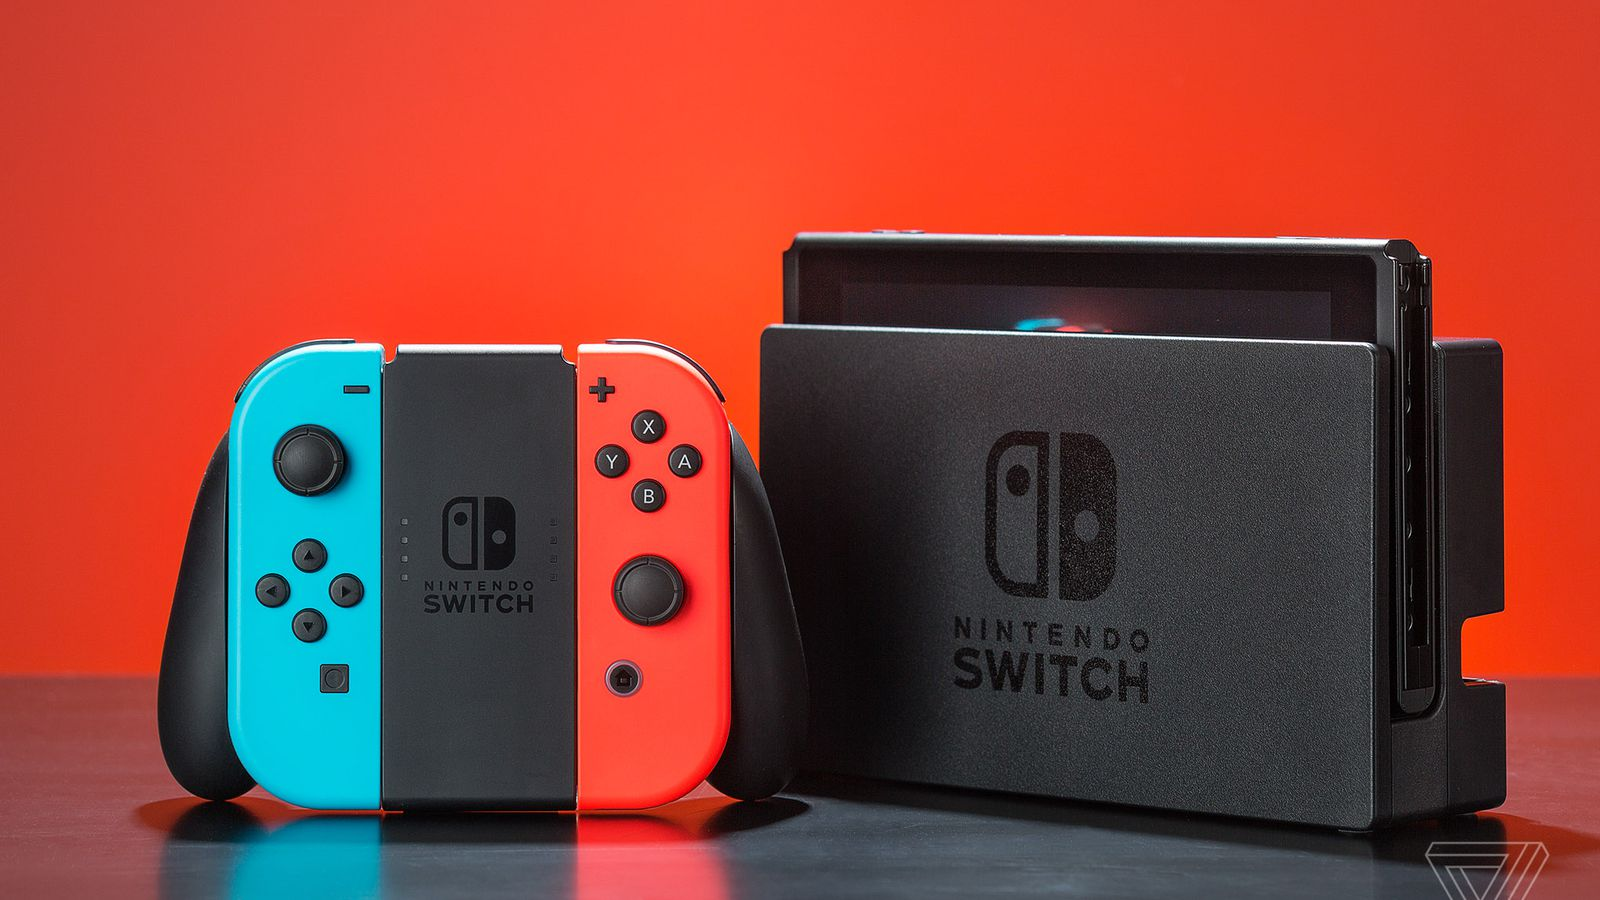 X Japan Wallpaper Hd Nintendo Switch Review Pure Potential The Verge